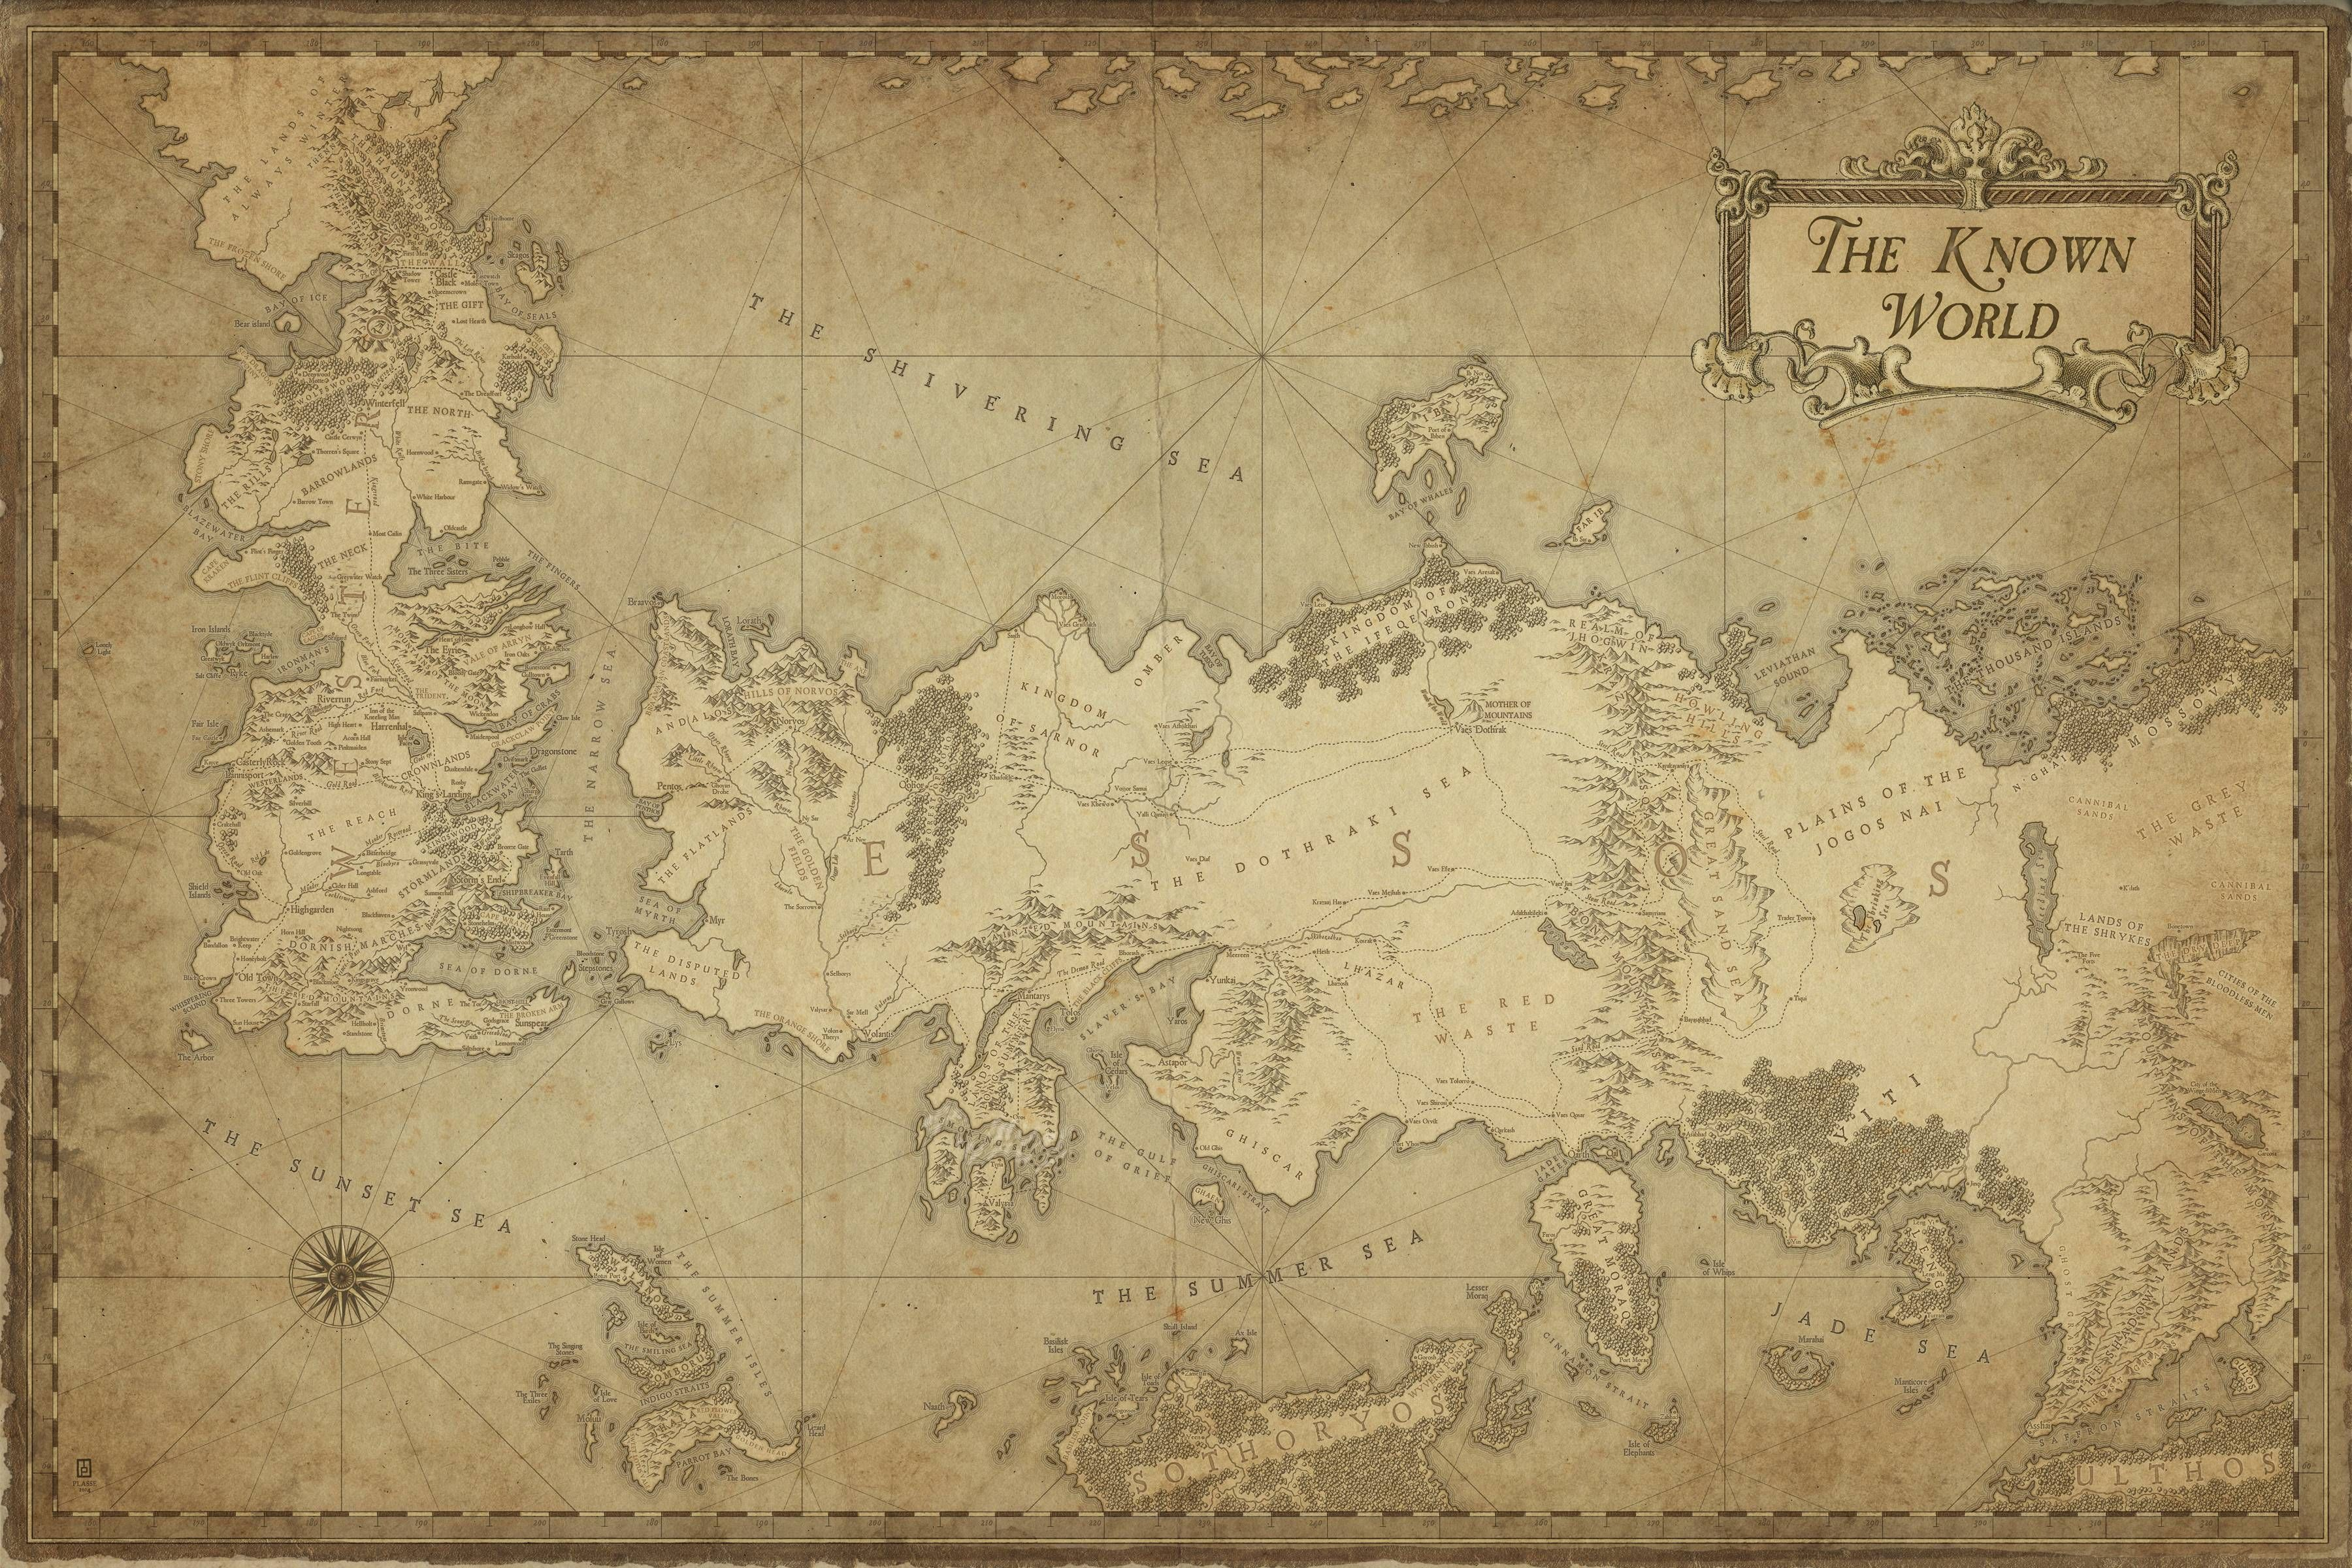 No spoilers map of the known world please give comments no spoilers map of the known world please give commentscriticisms gumiabroncs Gallery